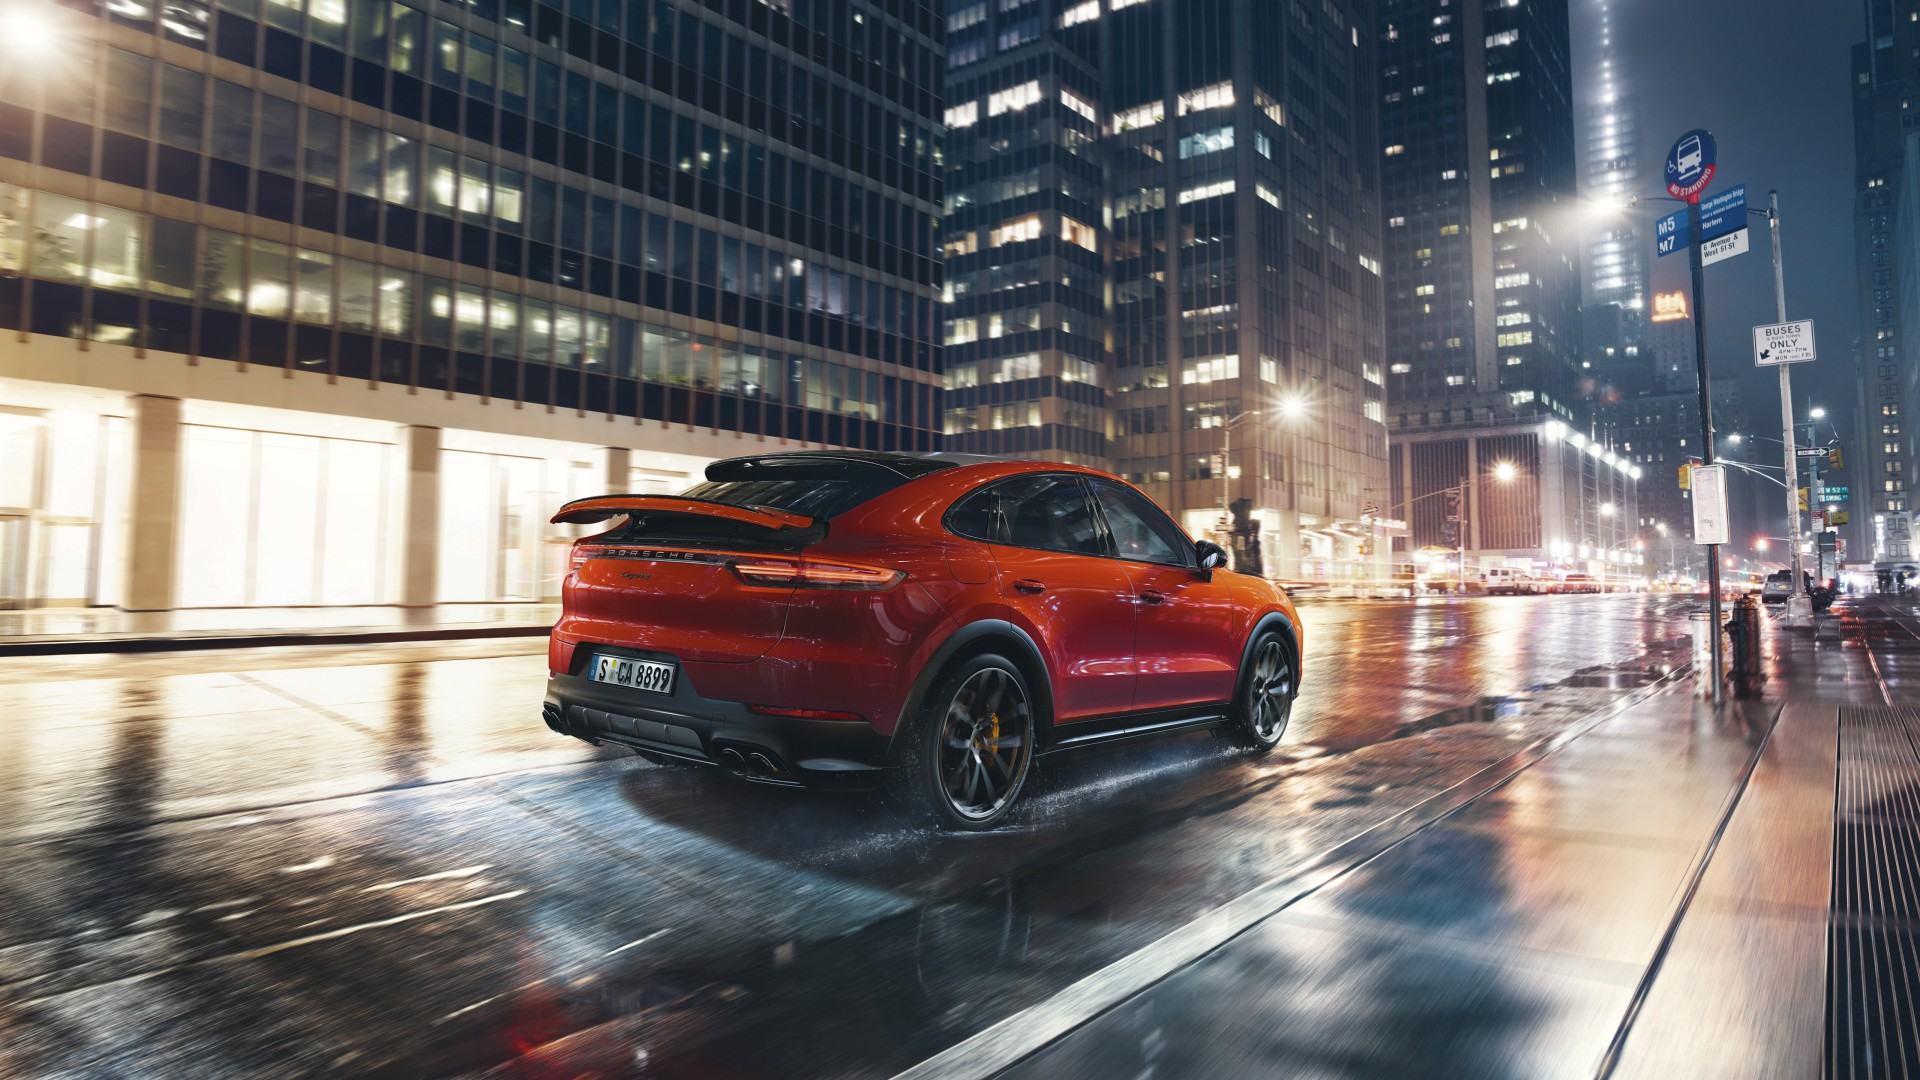 Porsche Cayenne Coupe 2019 4K 4 Wallpaper | HD Car ...